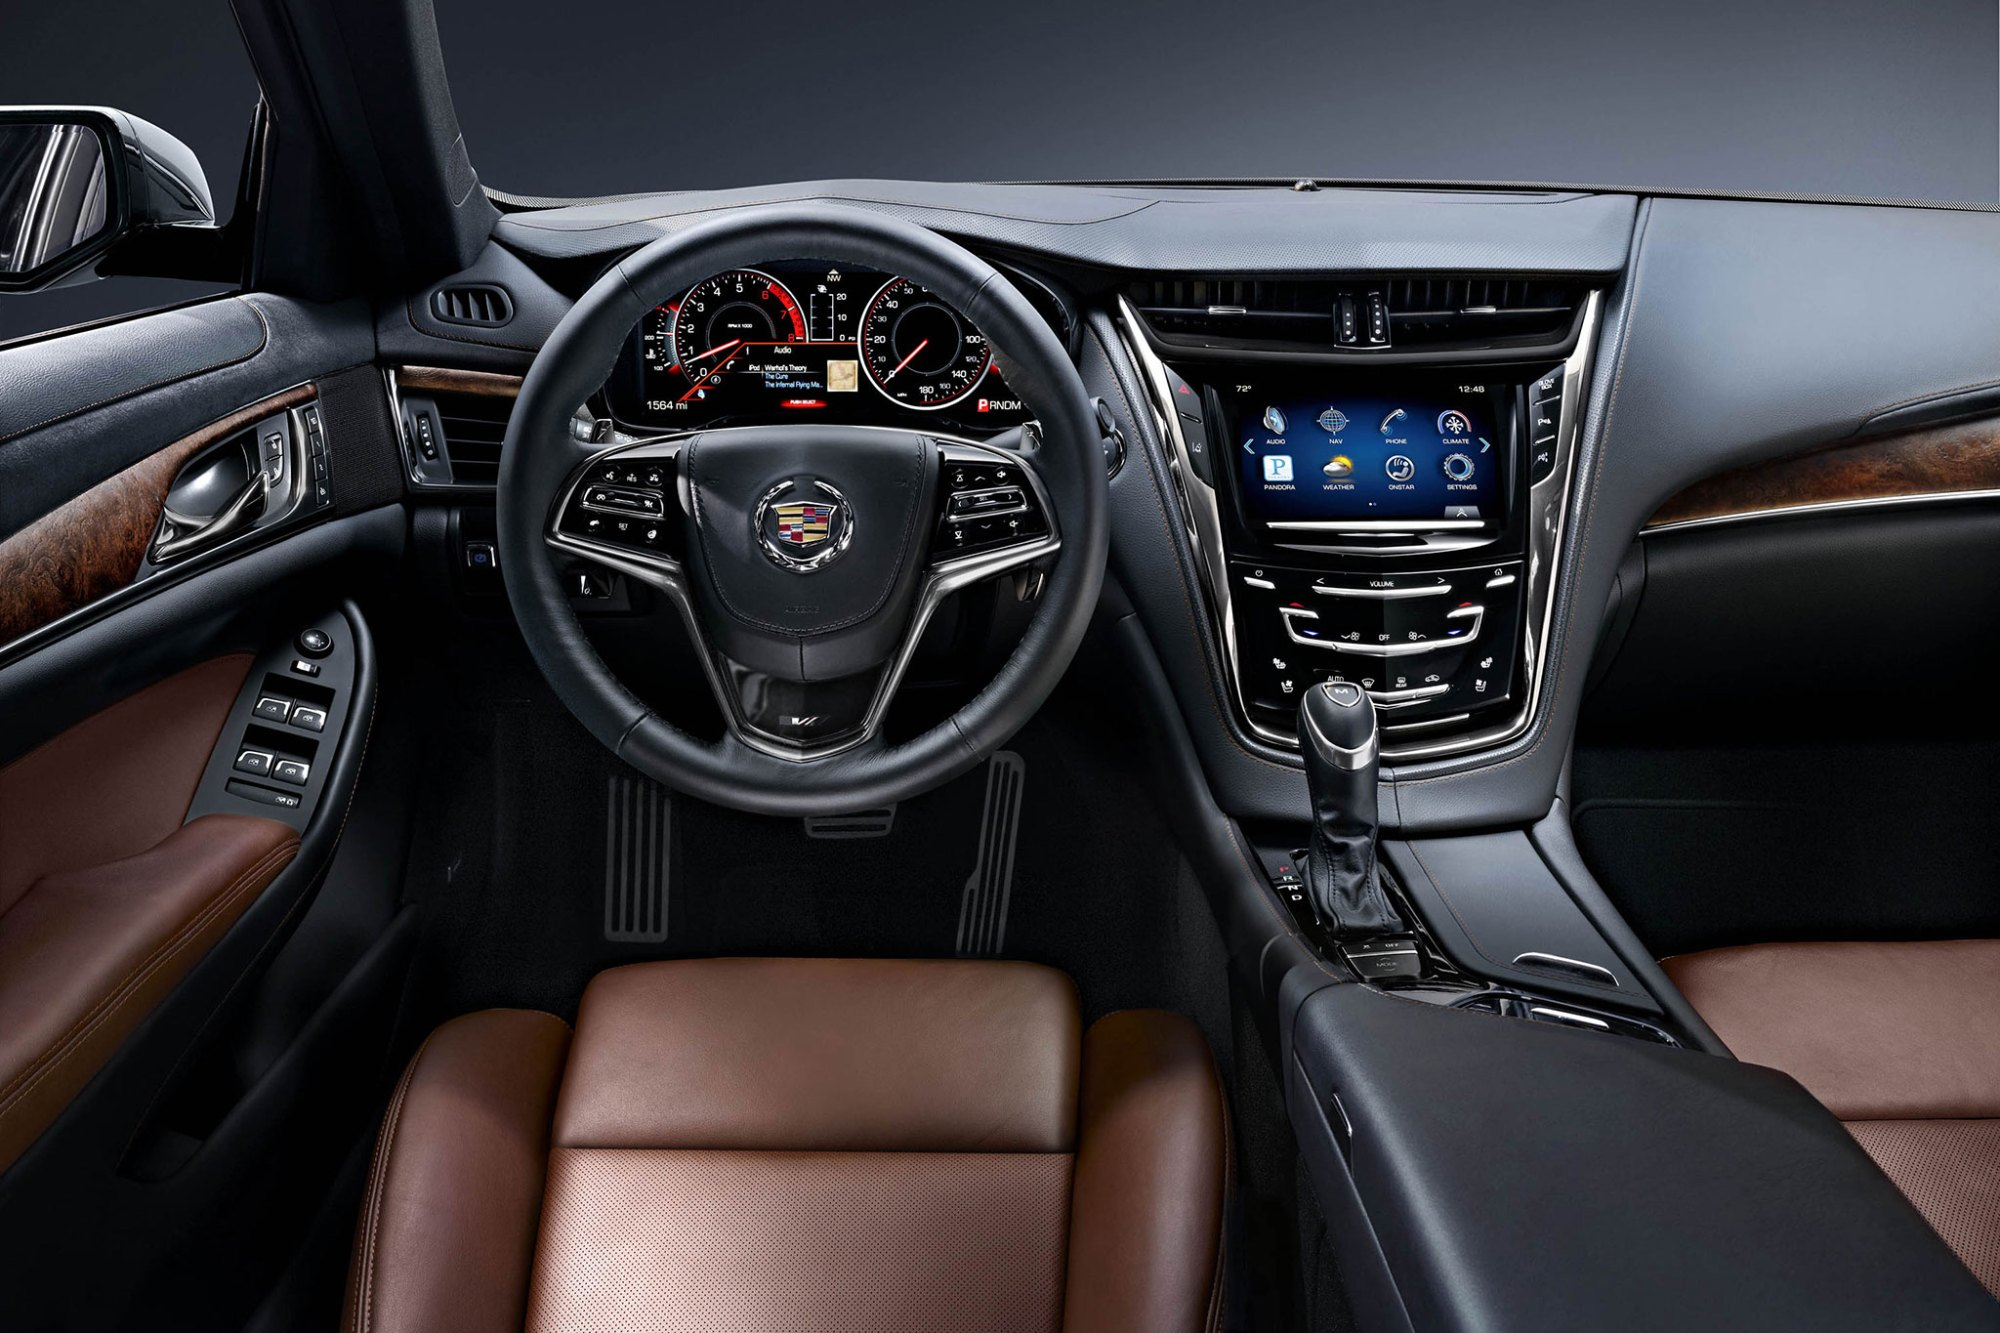 hight resolution of 2014 cadillac cts 18 222